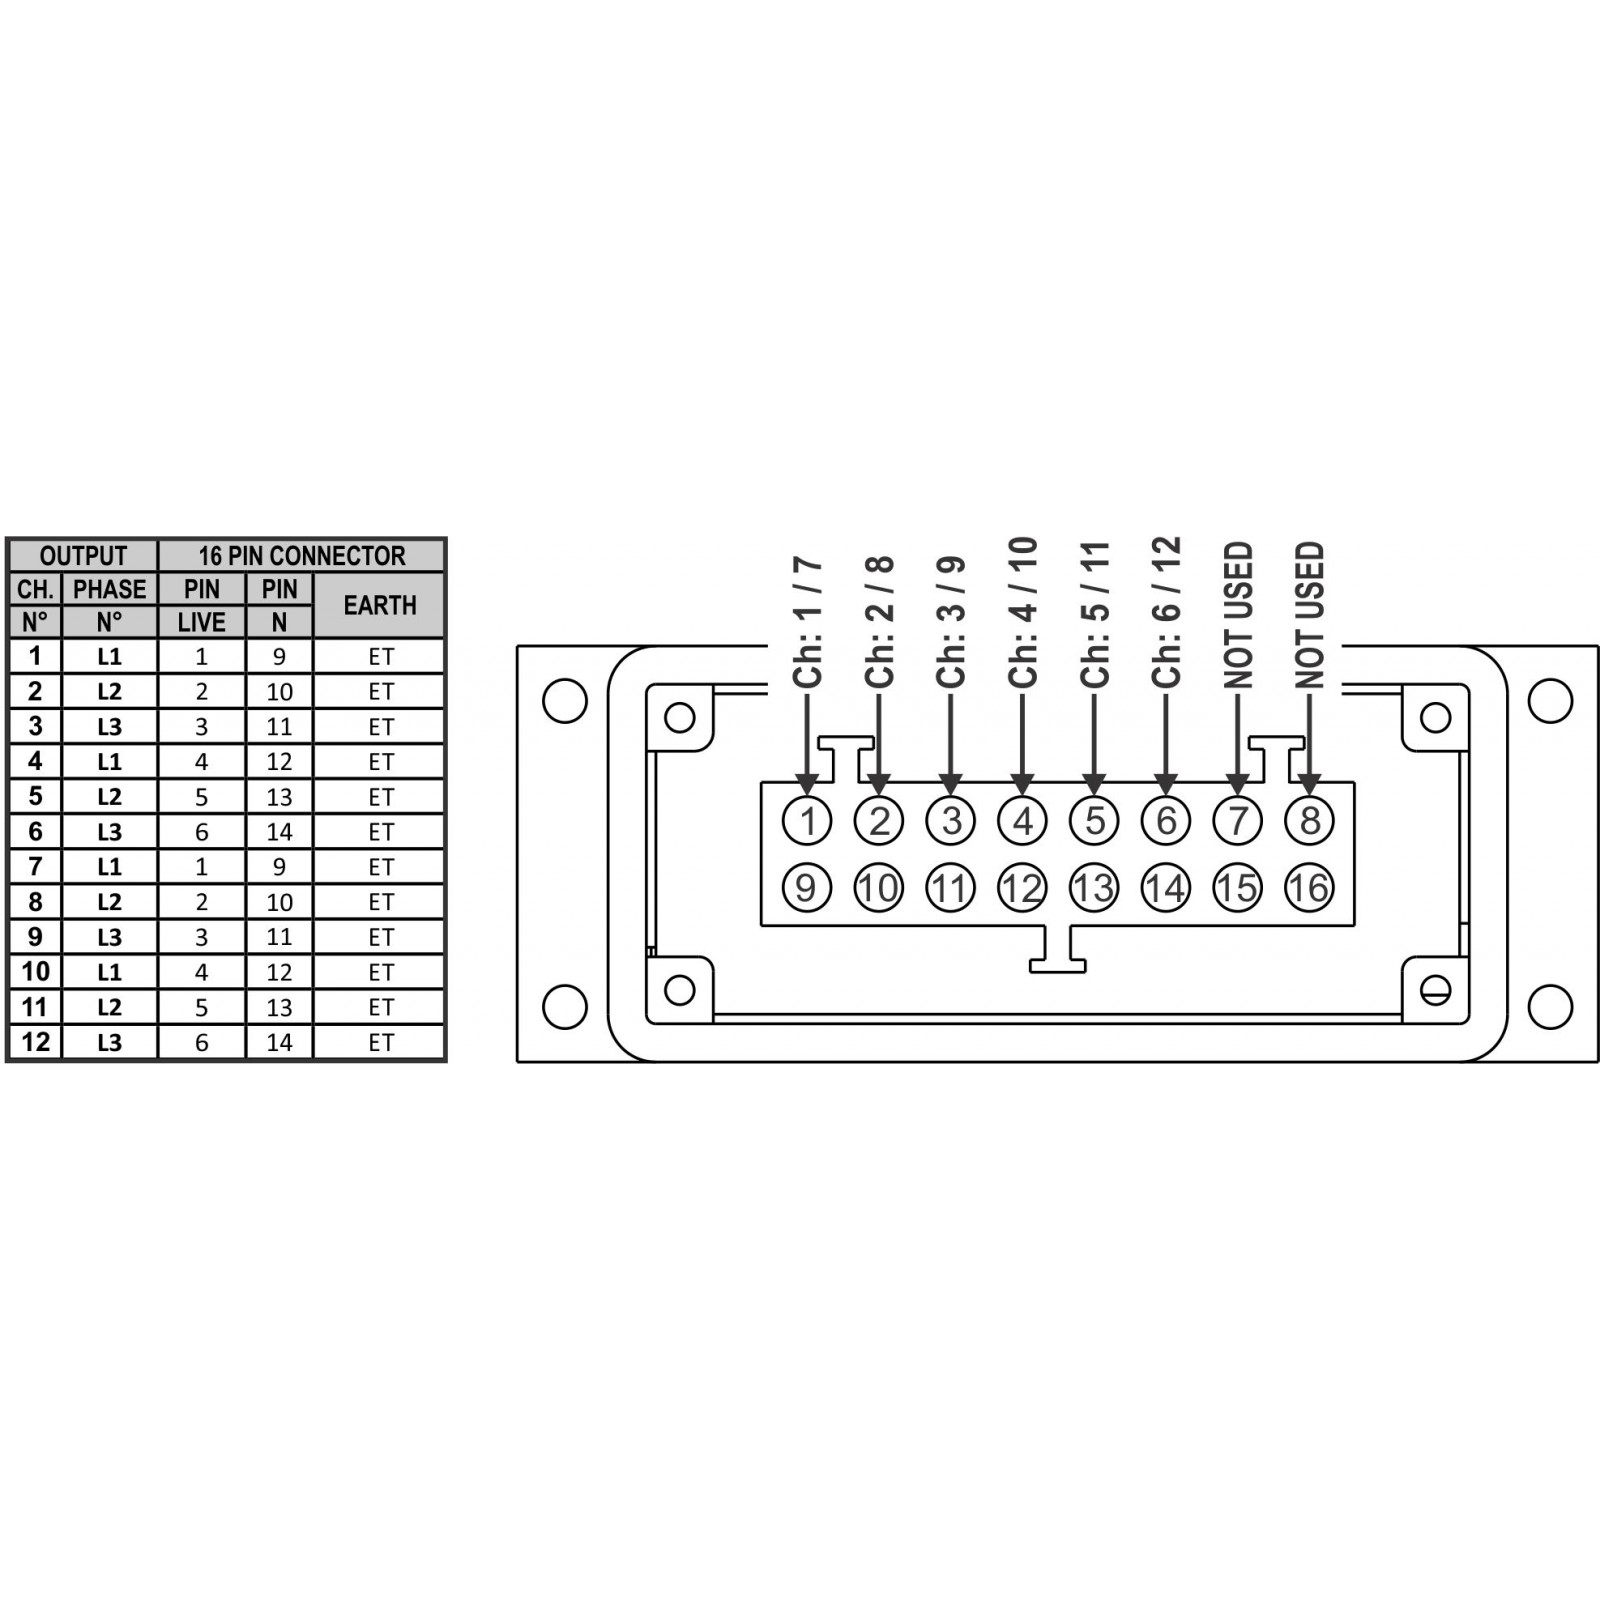 Neutrik Xlr Wiring Diagram as well Xlr 4 Pin Wiring Diagram likewise 3 5 Mm To Xlr Wiring Diagram likewise Wiring An Audio Jack moreover Qlc And Usb To Rs485 Adapter Replaces. on dmx connector wiring diagram